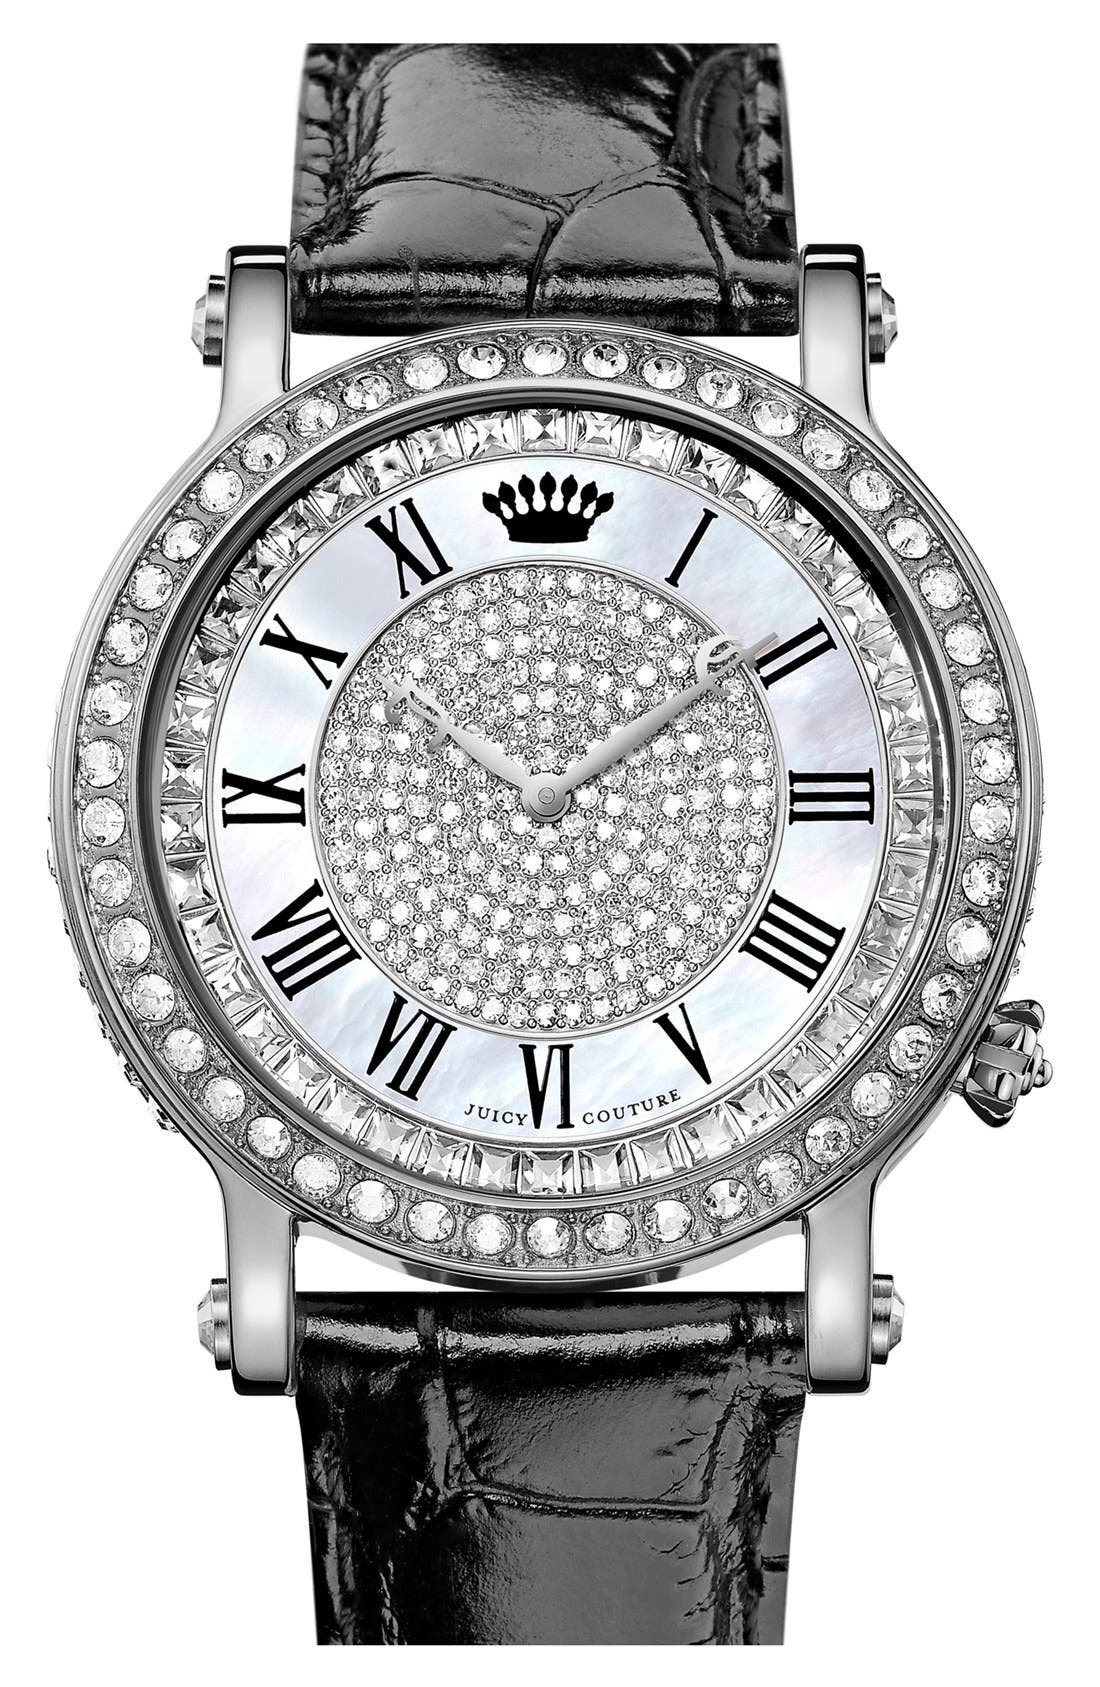 Alternate Image 1 Selected - Juicy Couture 'Queen Couture' Leather Strap Watch, 42mm